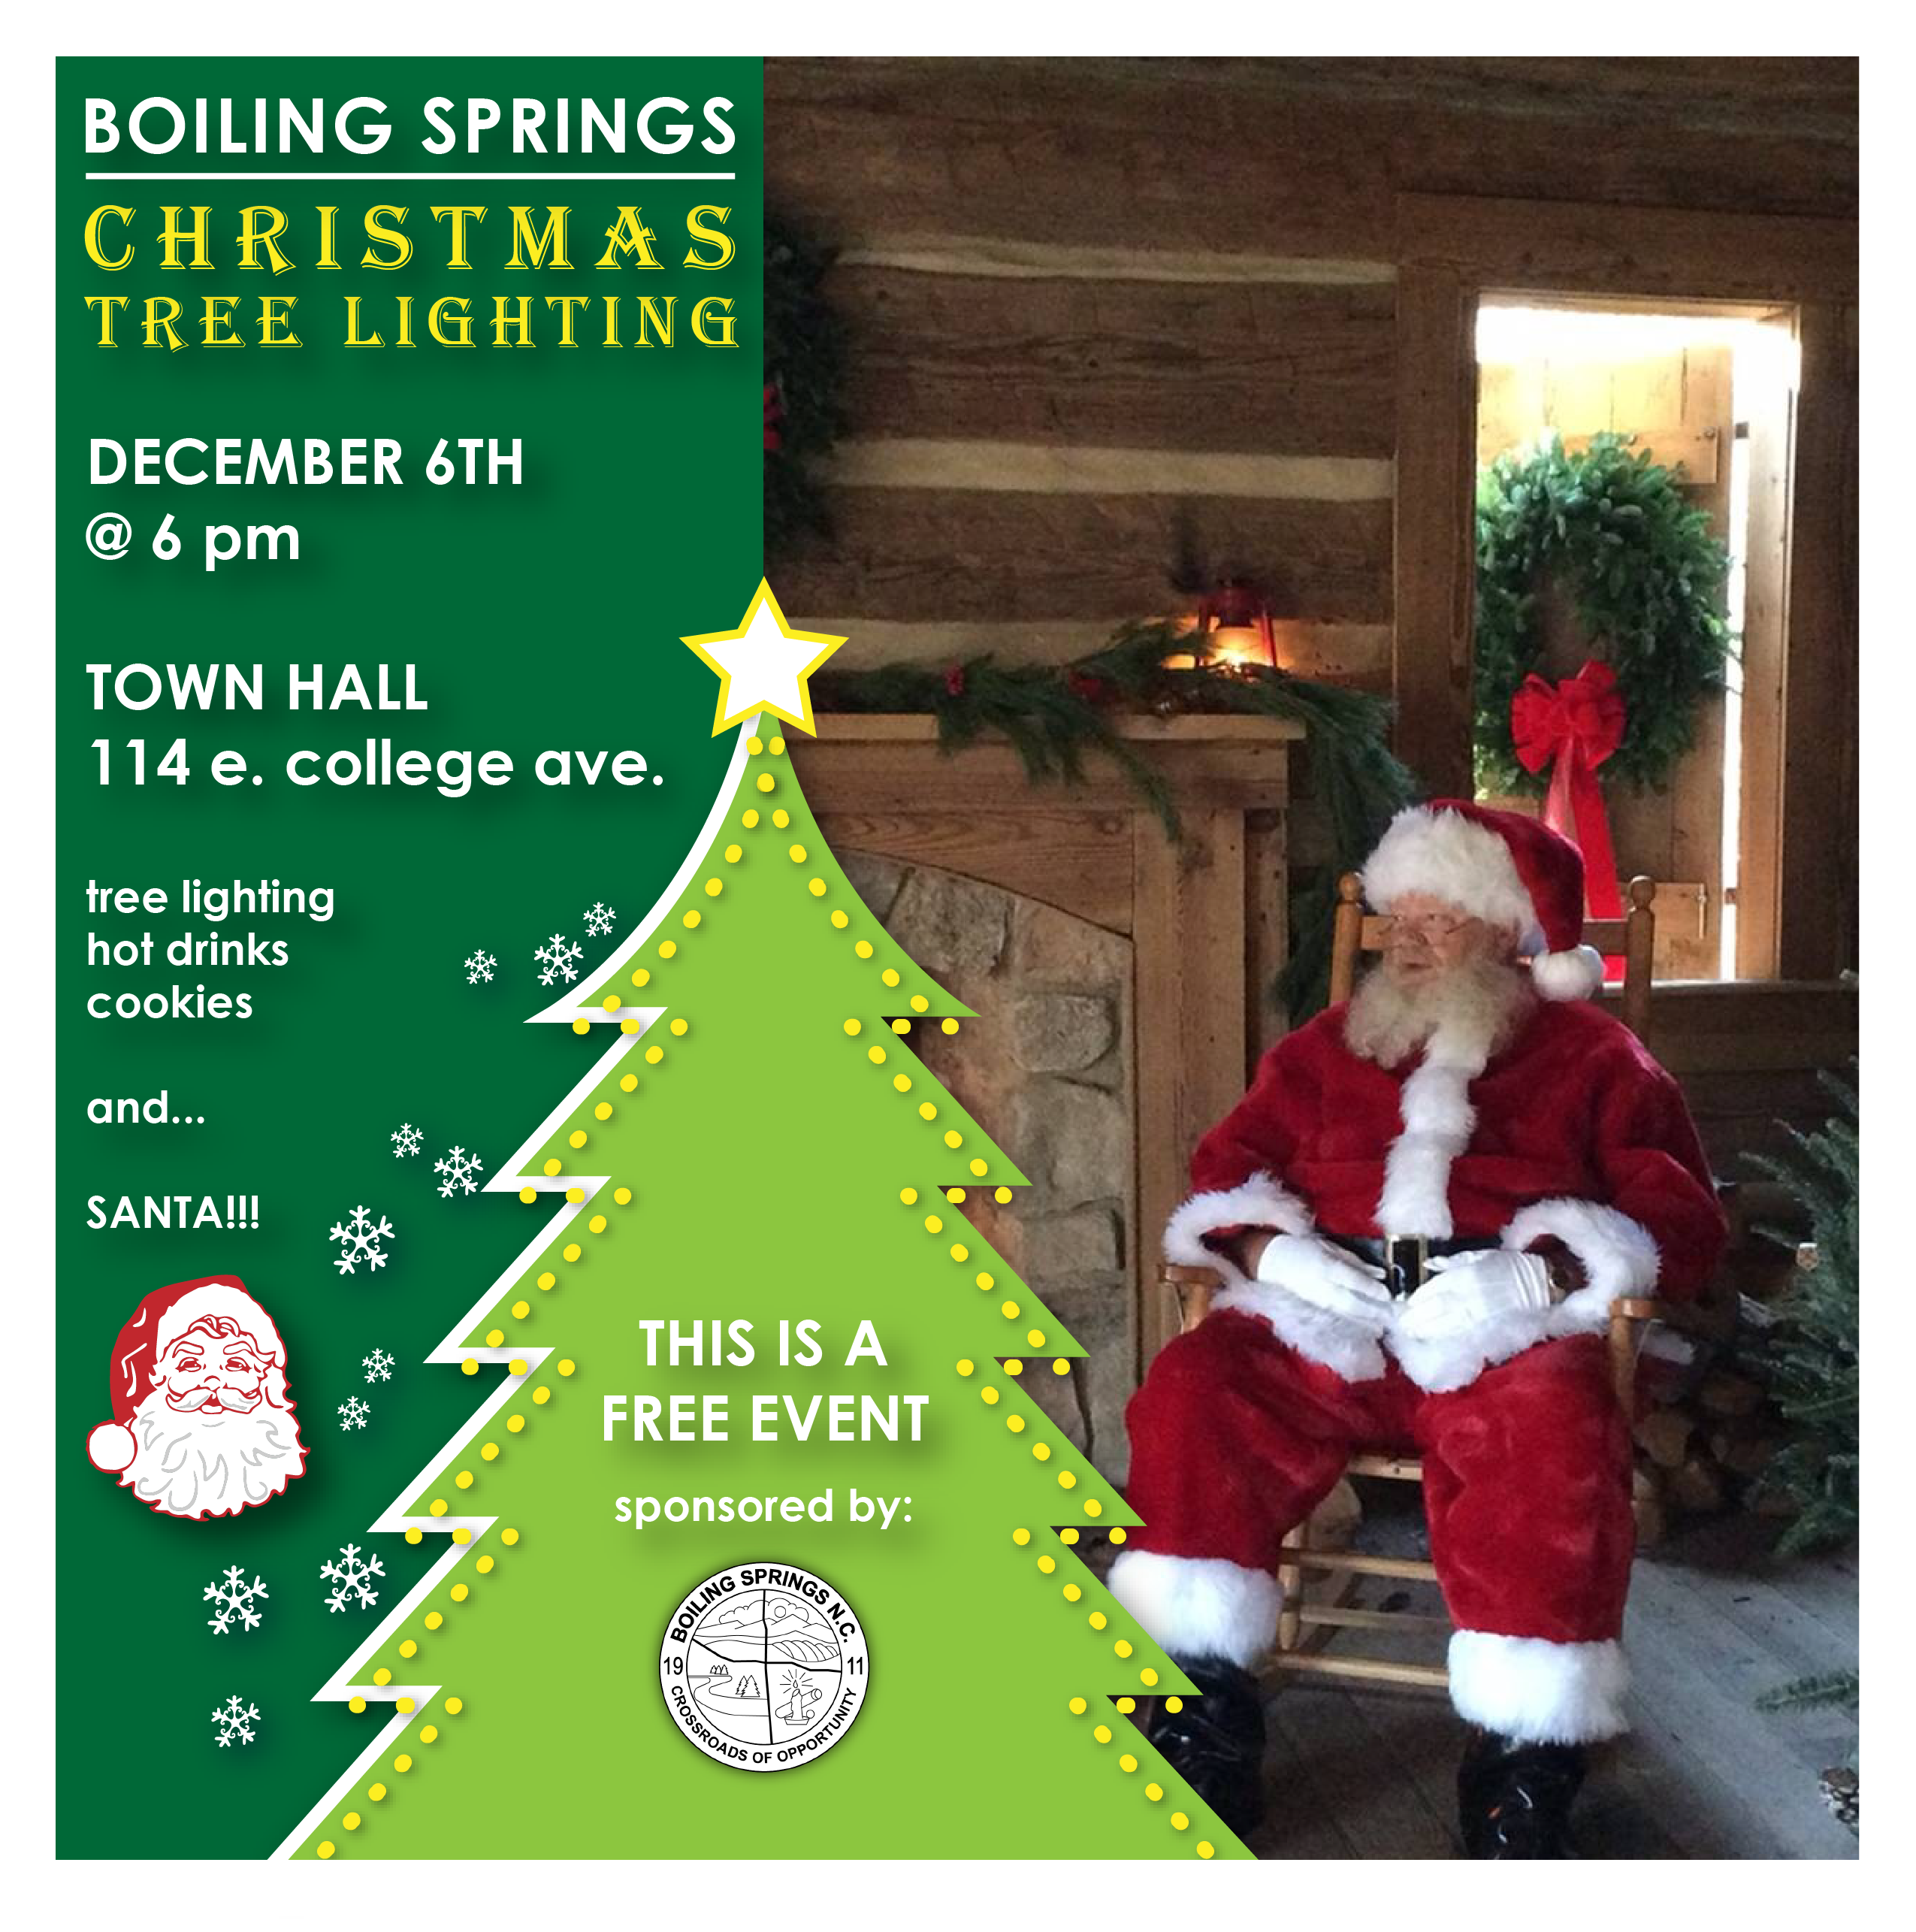 2019 Christmas Tree Lighting Event